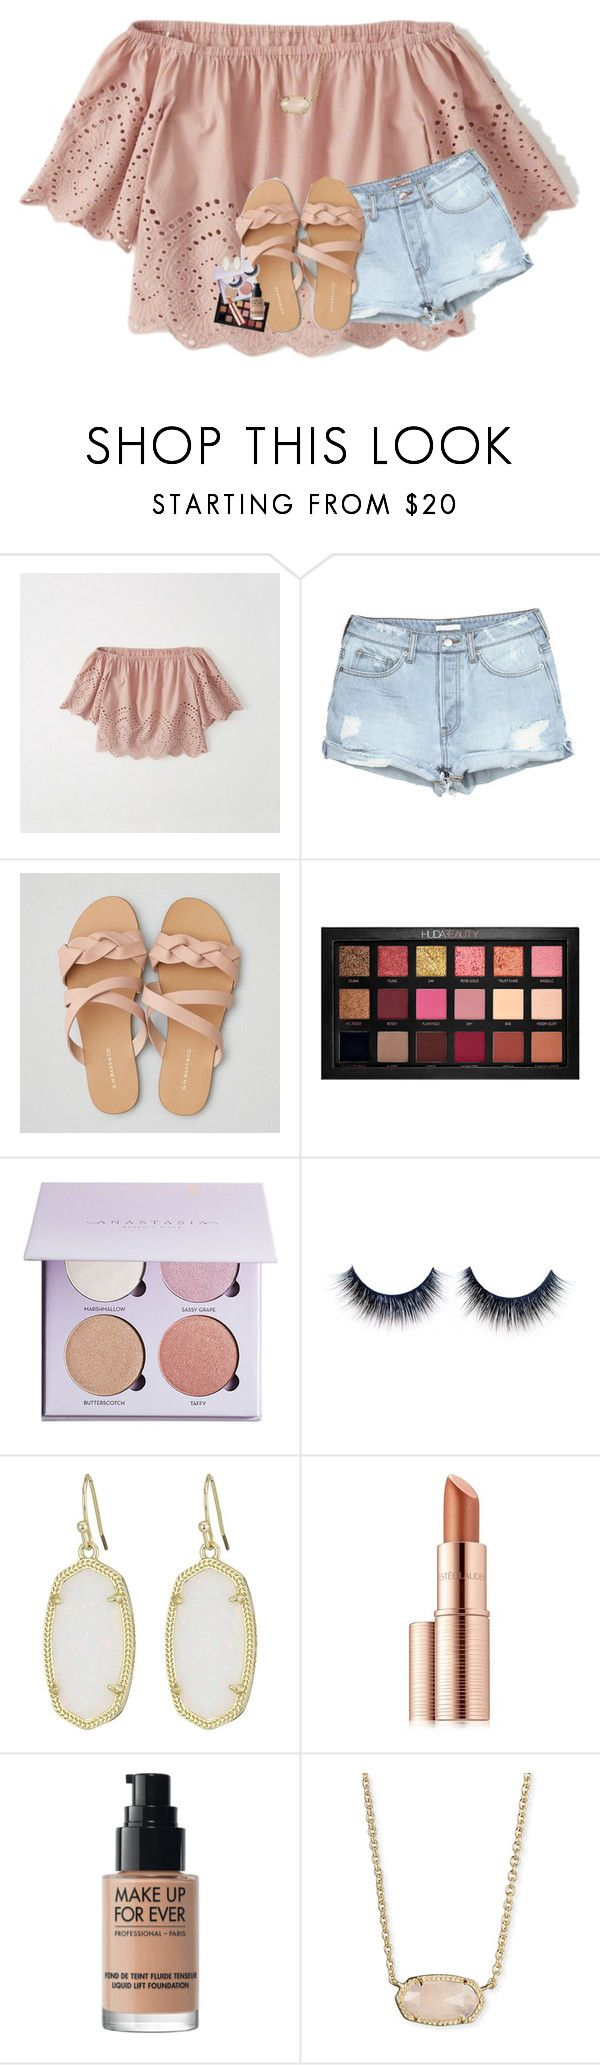 """""""hacked by lindsay<3"""" by theblonde07 ❤ liked on Polyvore featuring Abercrombie & Fitch, American Eagle Outfitters, Huda Beauty, Anastasia Beverly Hills, Kendra Scott, Estée Lauder and MAKE UP FOR EVER"""